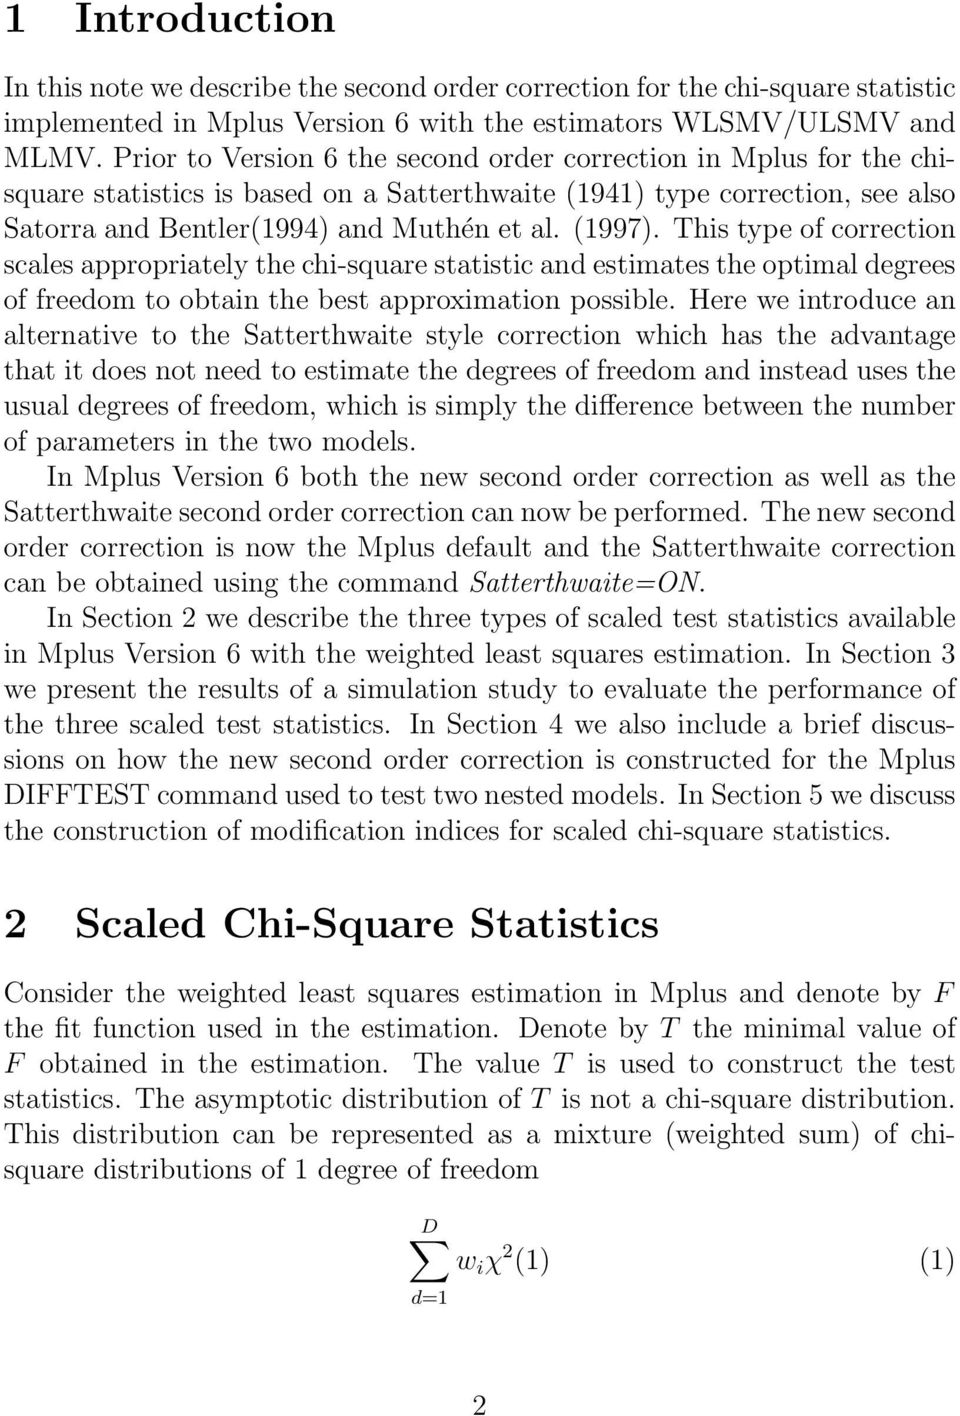 This type of correction scales appropriately the chi-square statistic and estimates the optimal degrees of freedom to obtain the best approximation possible.